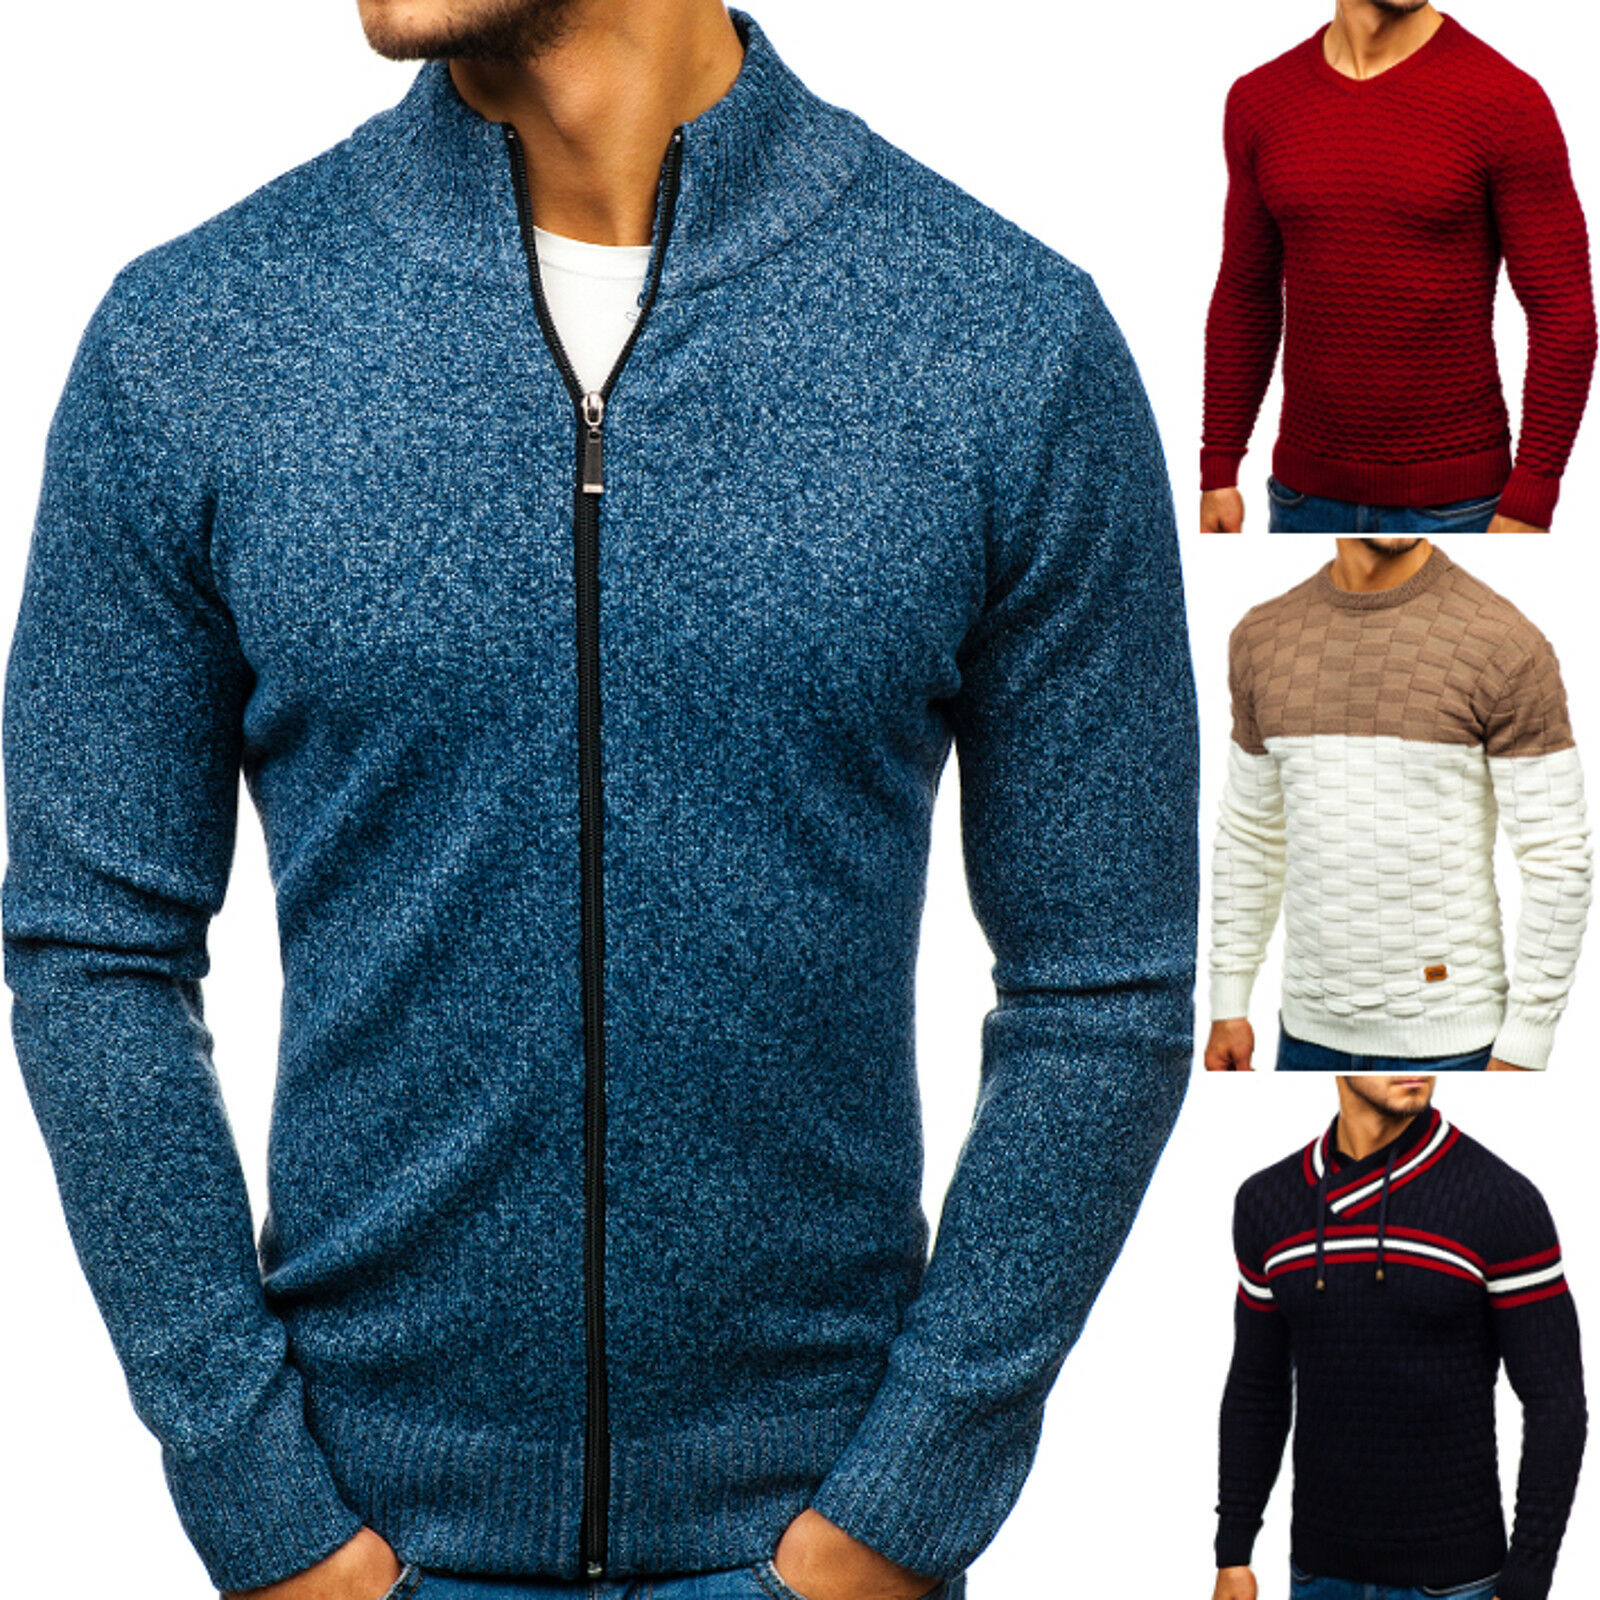 BOLF Strickjacke Strickpullover Pulli Sweater Cardigan Herren Mix 5E5 Motiv WOW